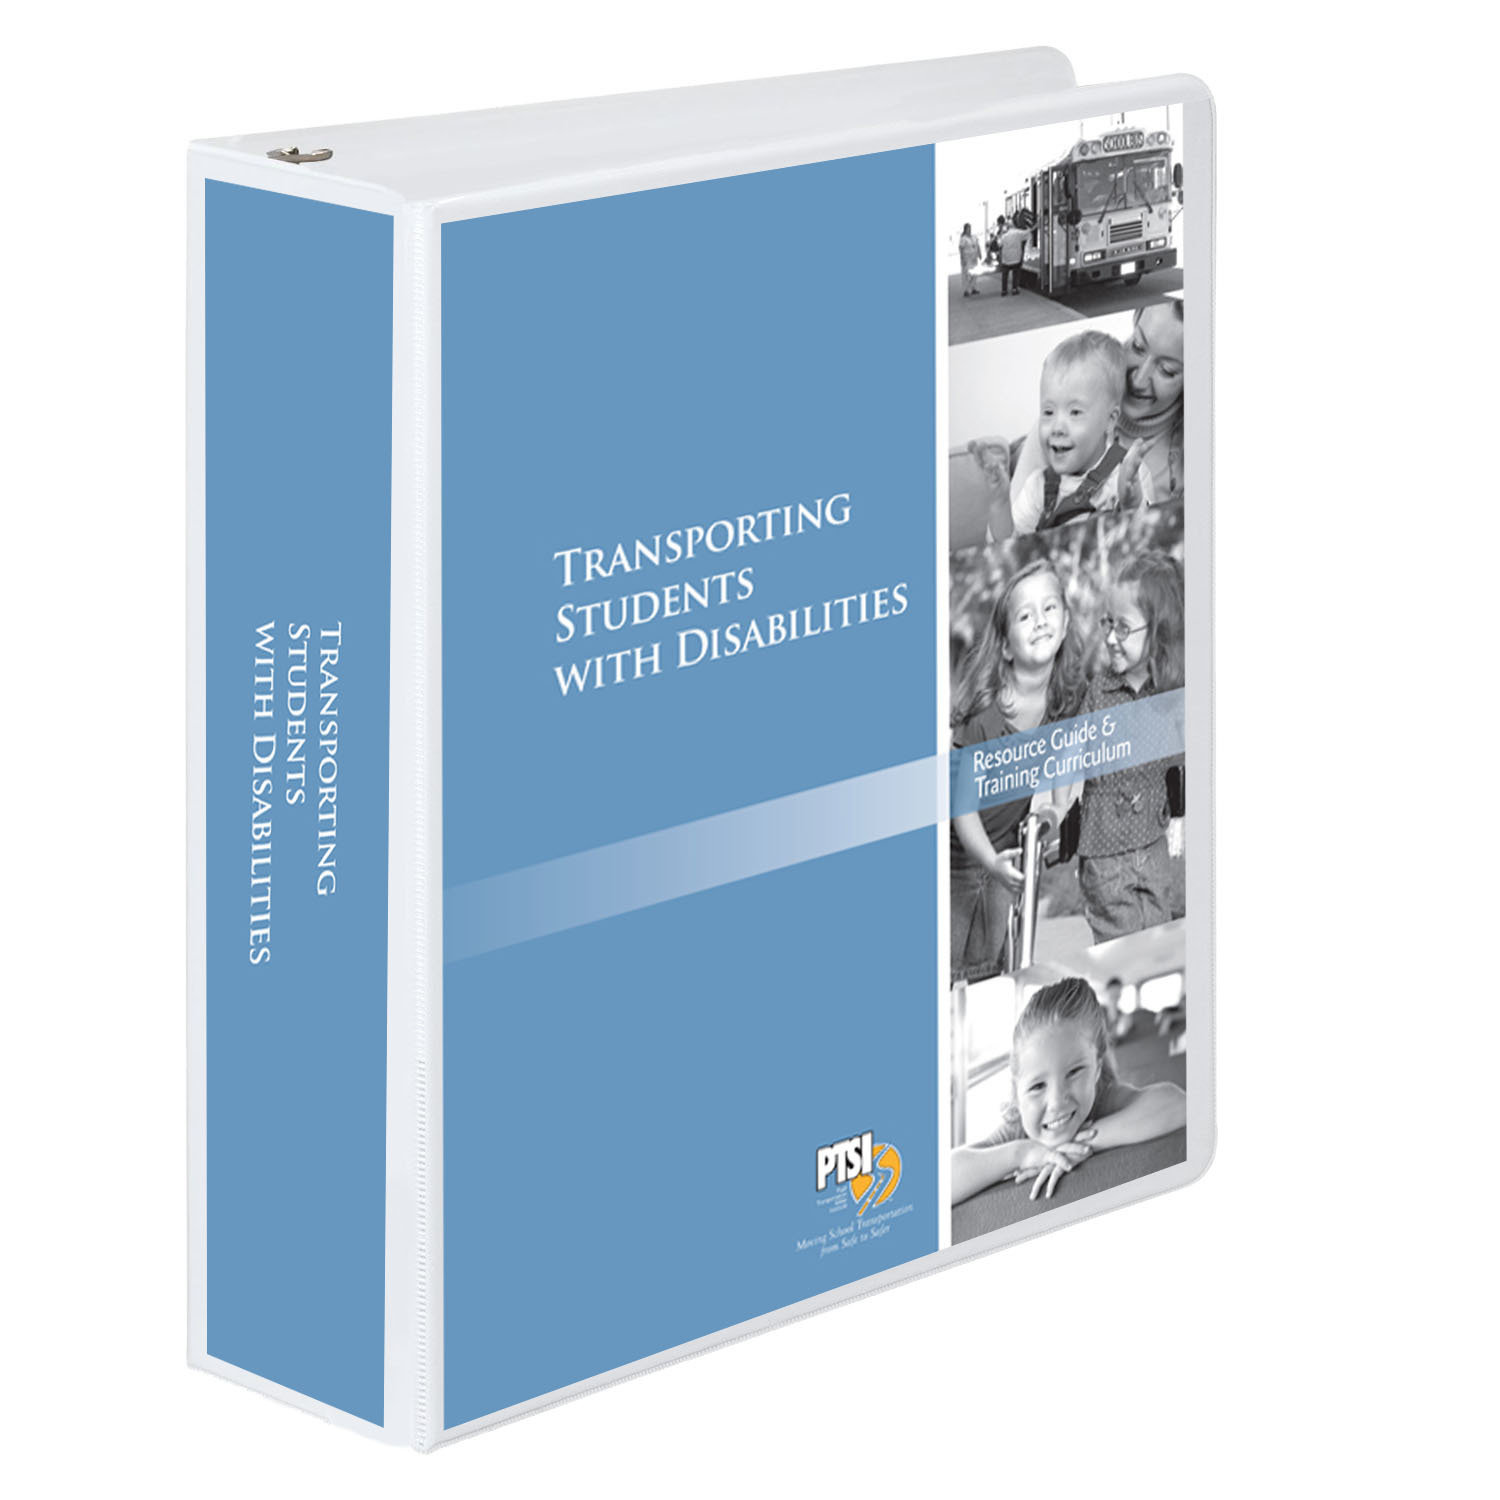 Transporting Students with Disabilities Training Curriculum